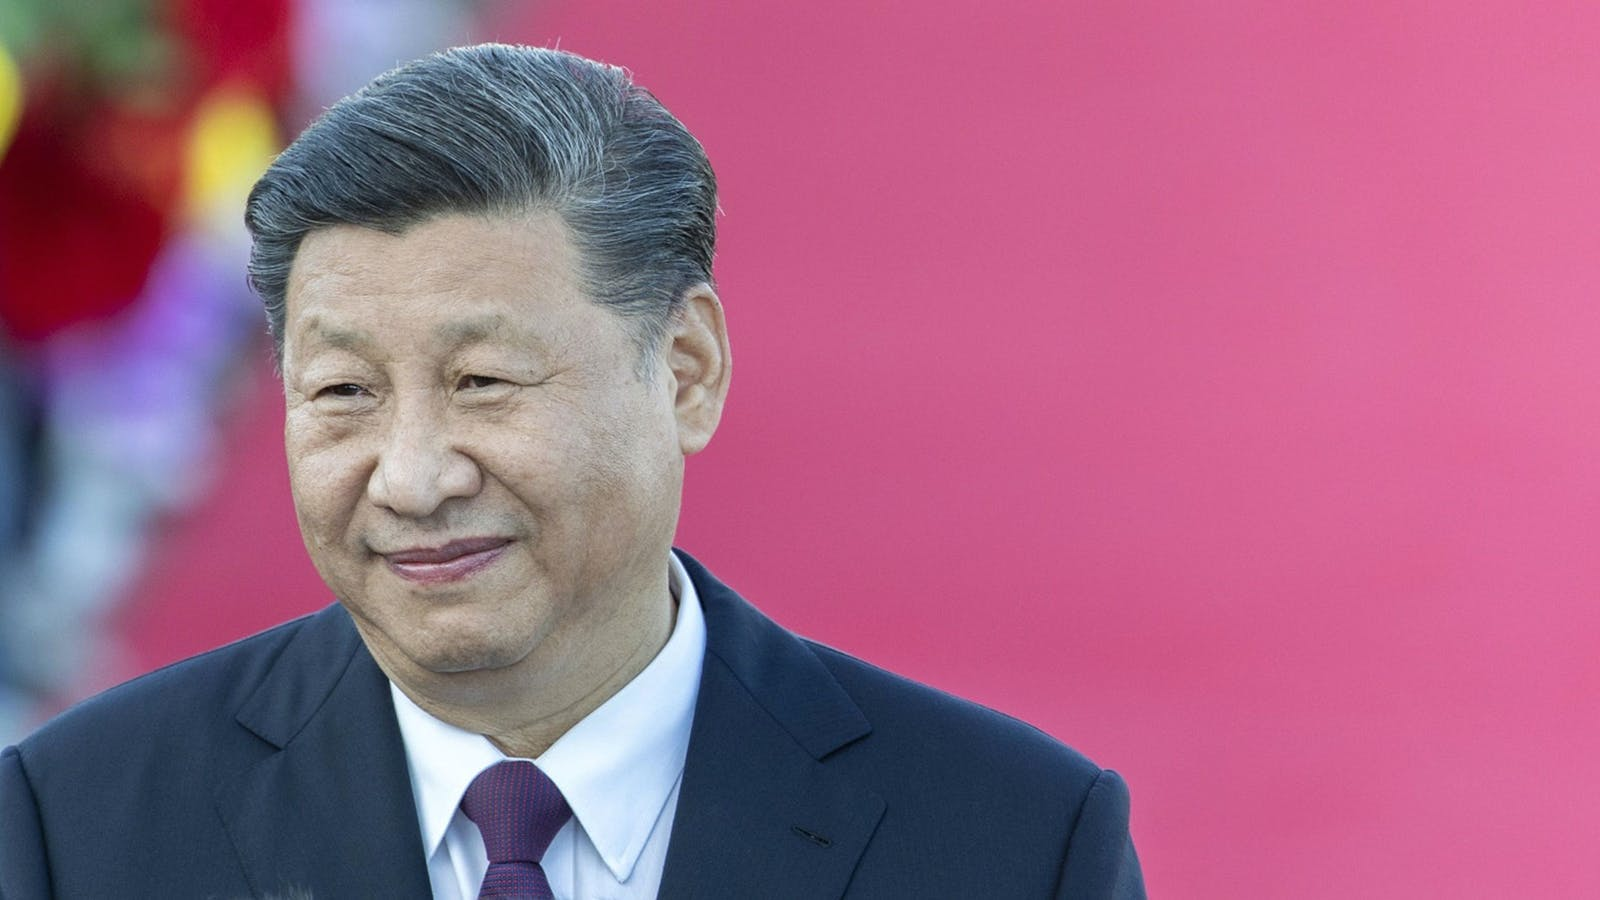 Chinese president Xi Jinping. Photo by Bloomberg